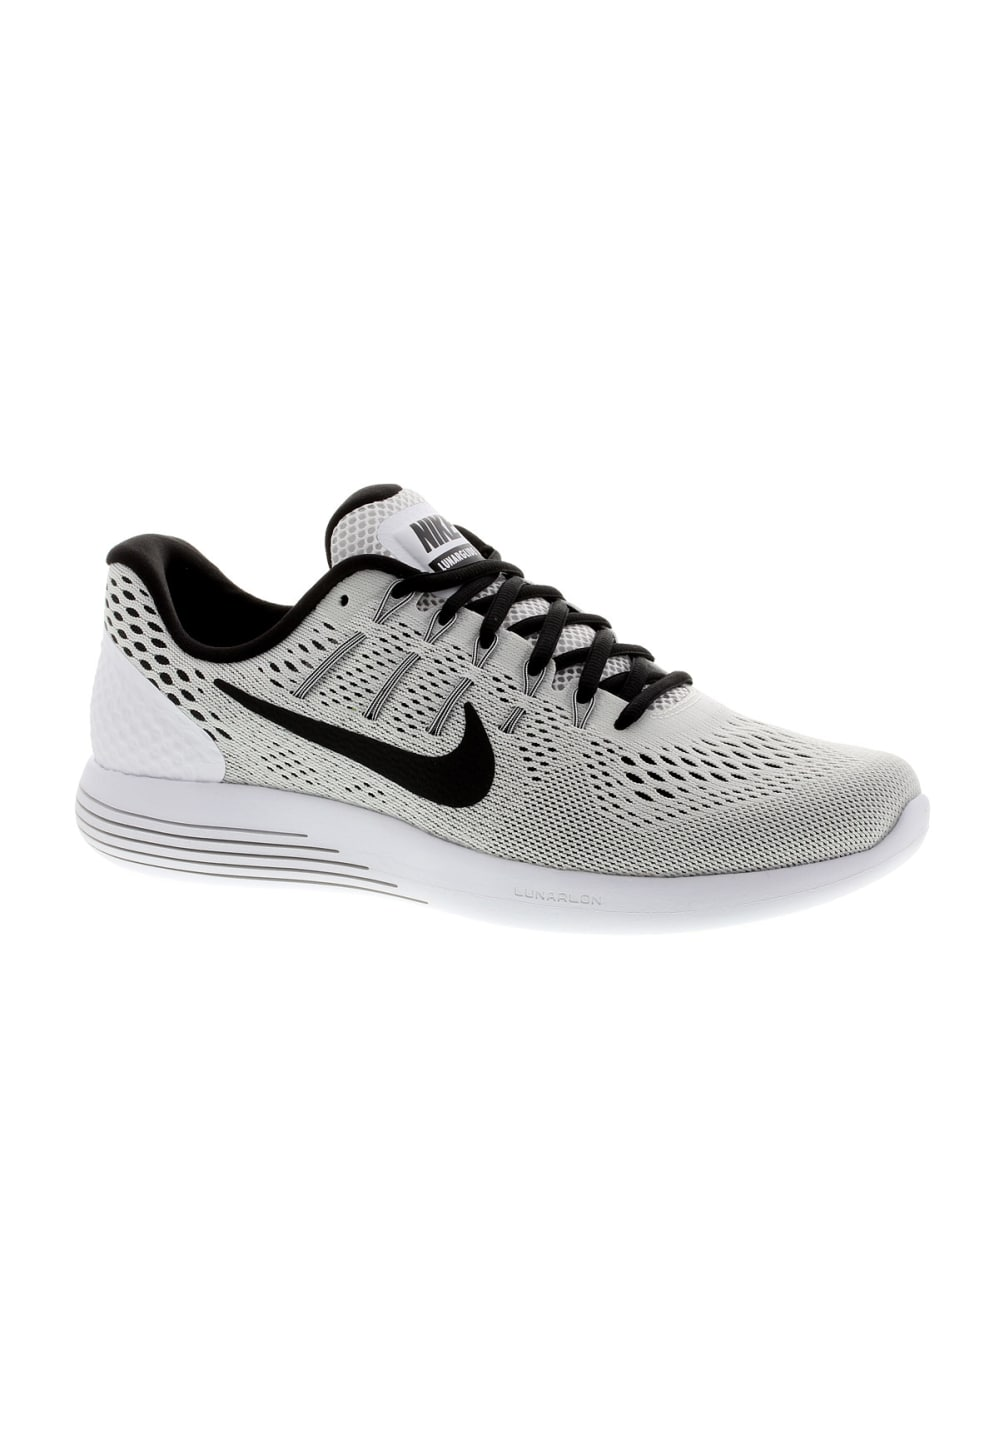 97f0bdf35d6a Next. -60%. Nike. Lunarglide 8 - Running shoes for Women